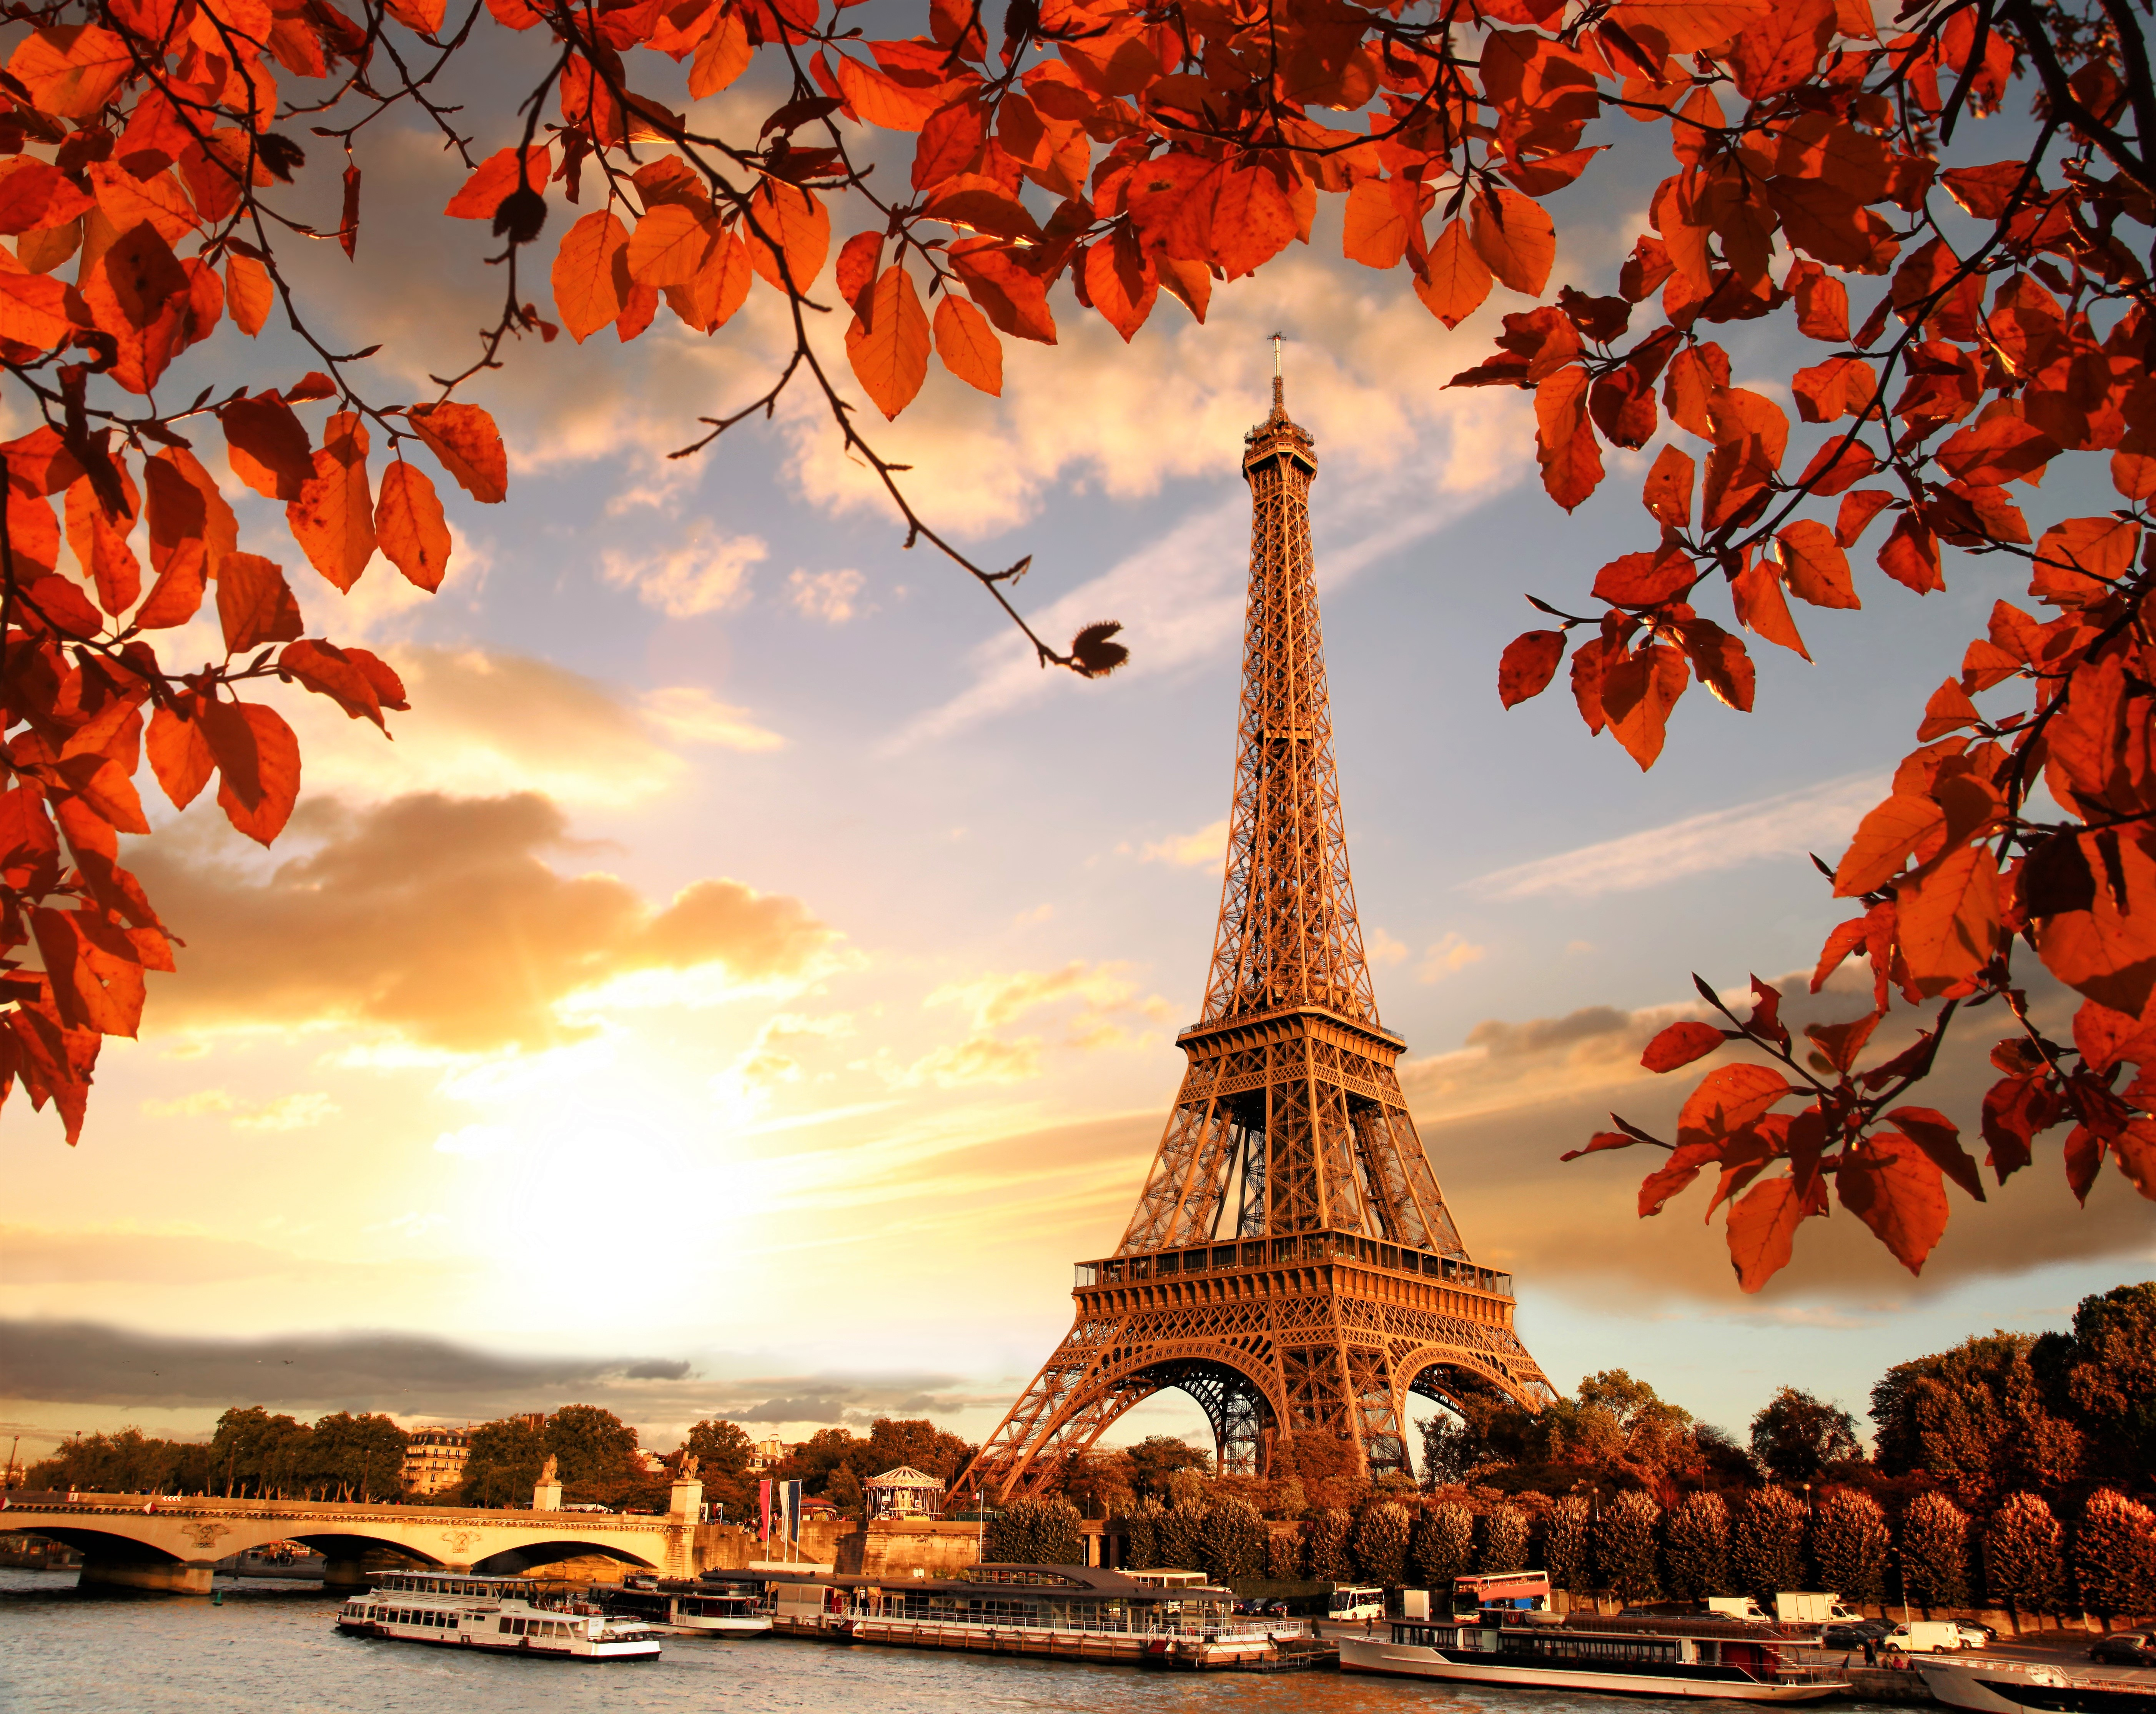 1680x1050 Eiffel Tower In Autumn France Paris Fall 1680x1050 Resolution Wallpaper Hd City 4k Wallpapers Images Photos And Background